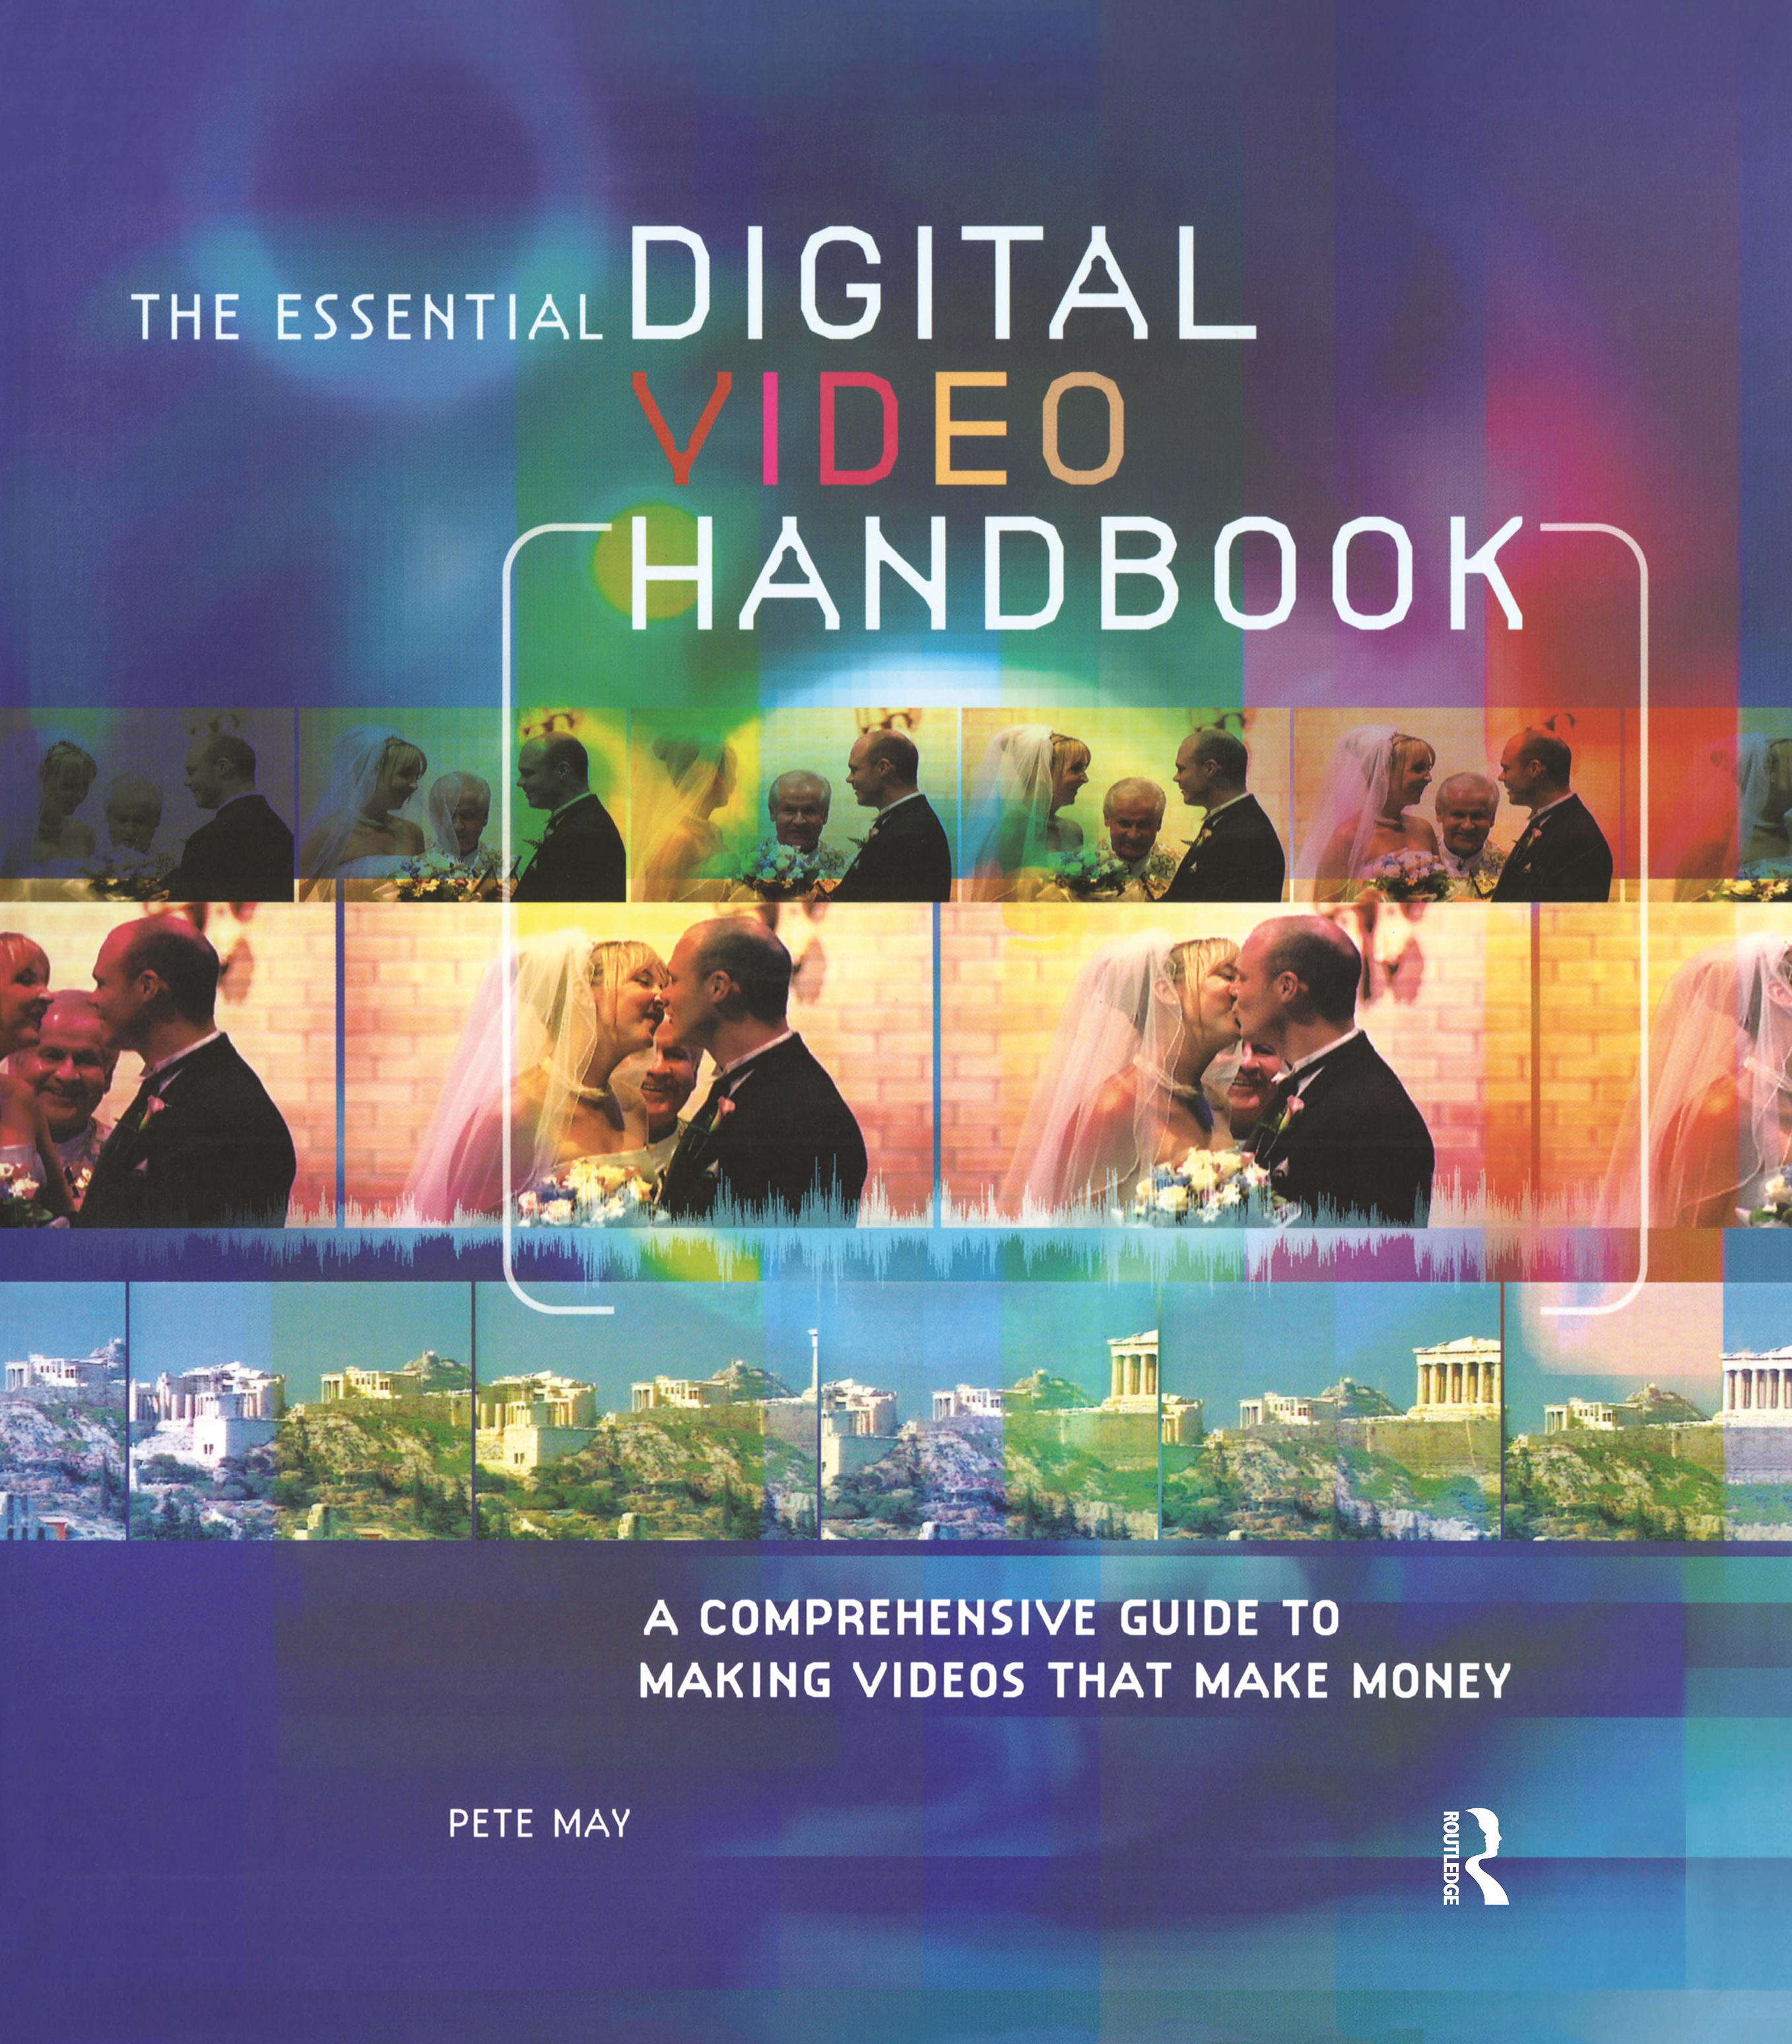 Essential Digital Video Handbook: A Comprehensive Guide to Making Videos That Make Money book cover